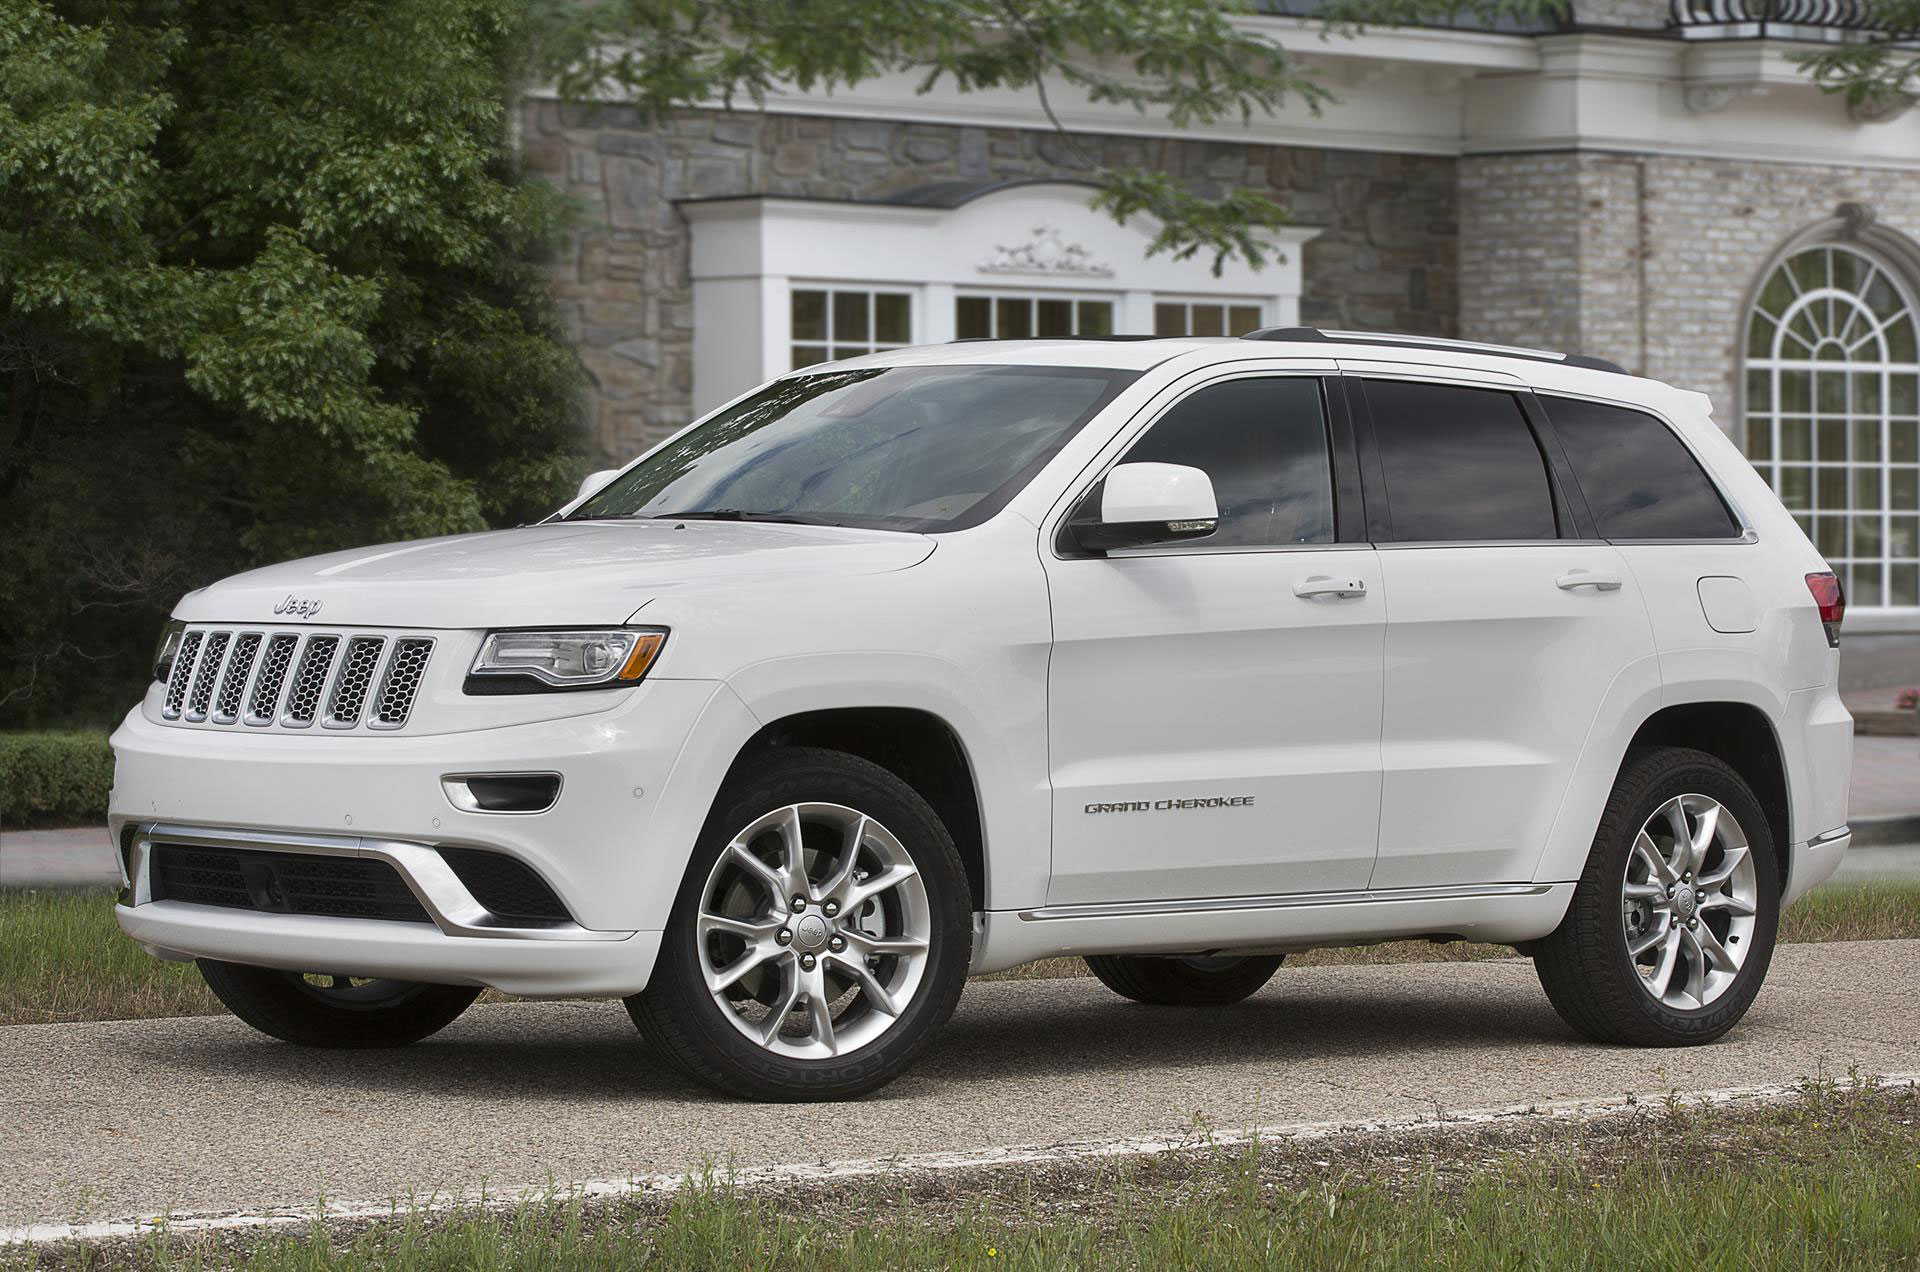 driving light wiring diagram toyota pioneer 2015 jeep grand cherokee news and information